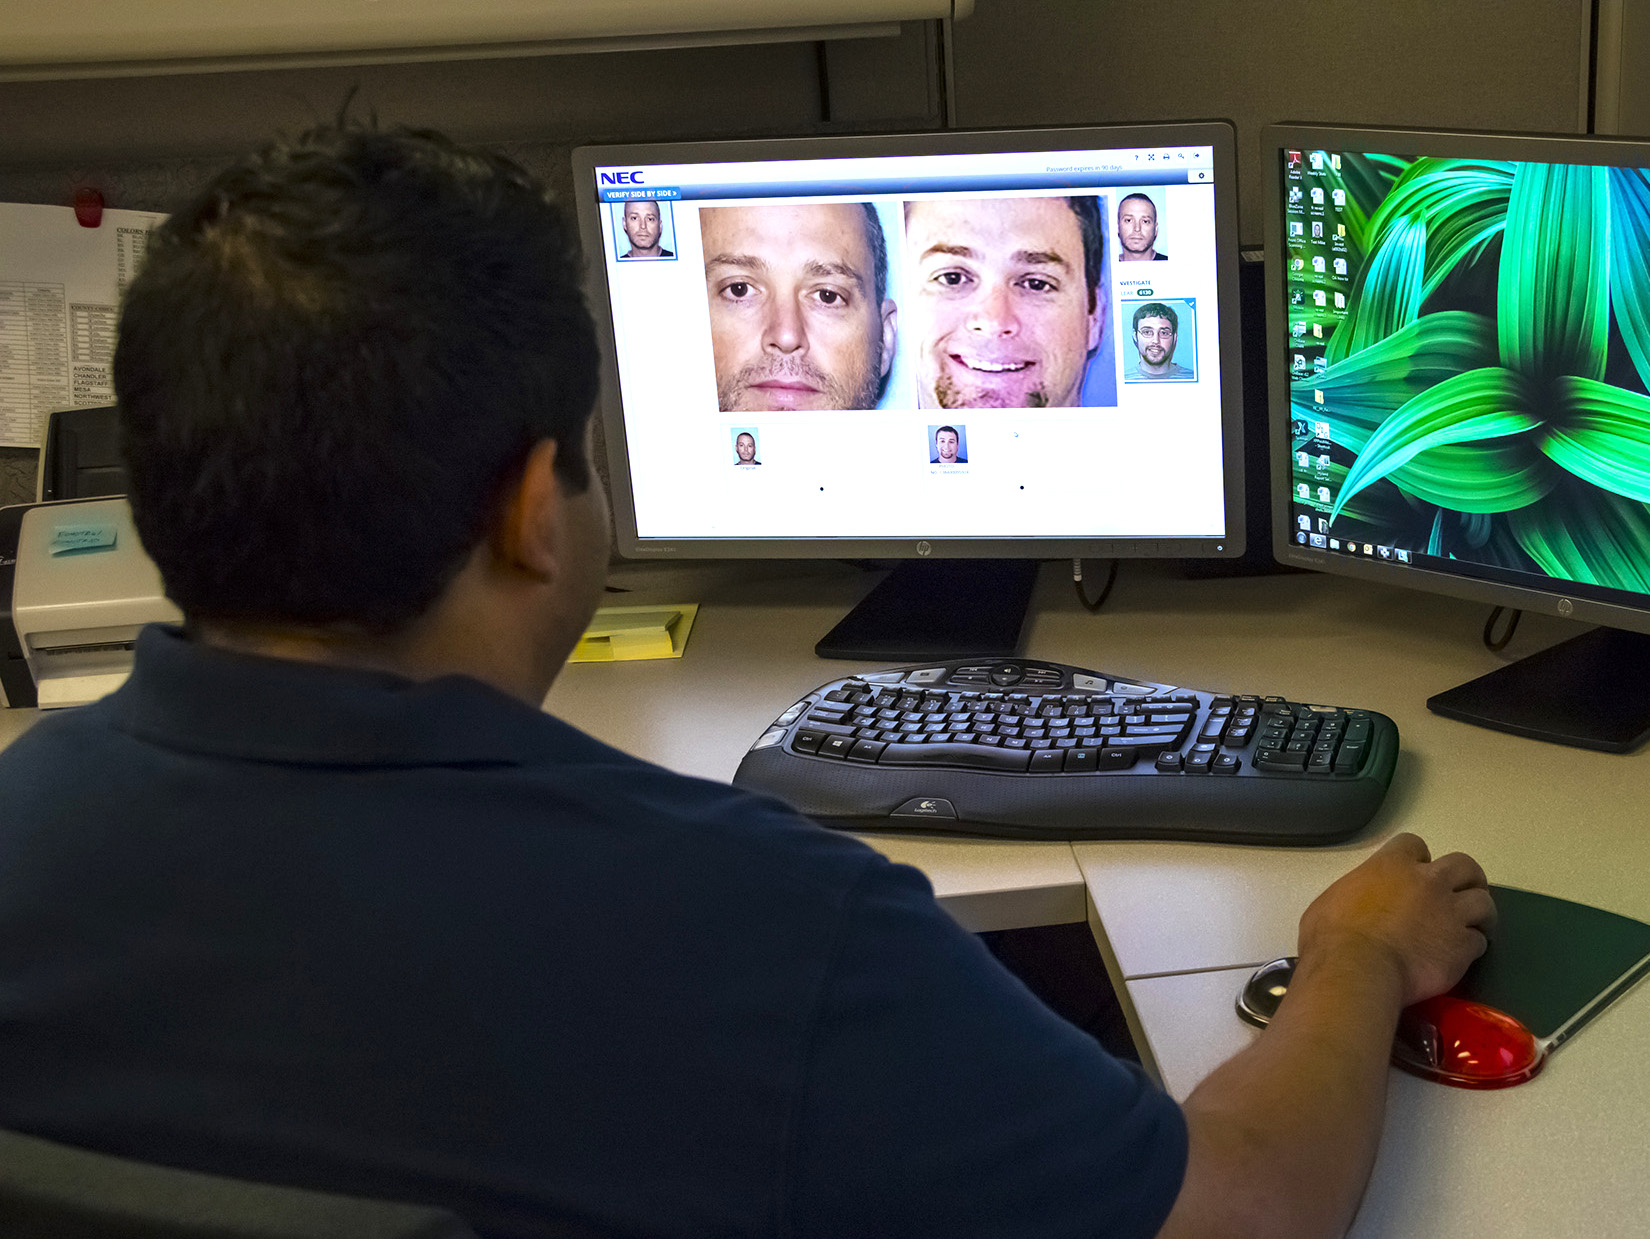 An Arizona Department of Transportation worker sits at a computer, running face recognition software.